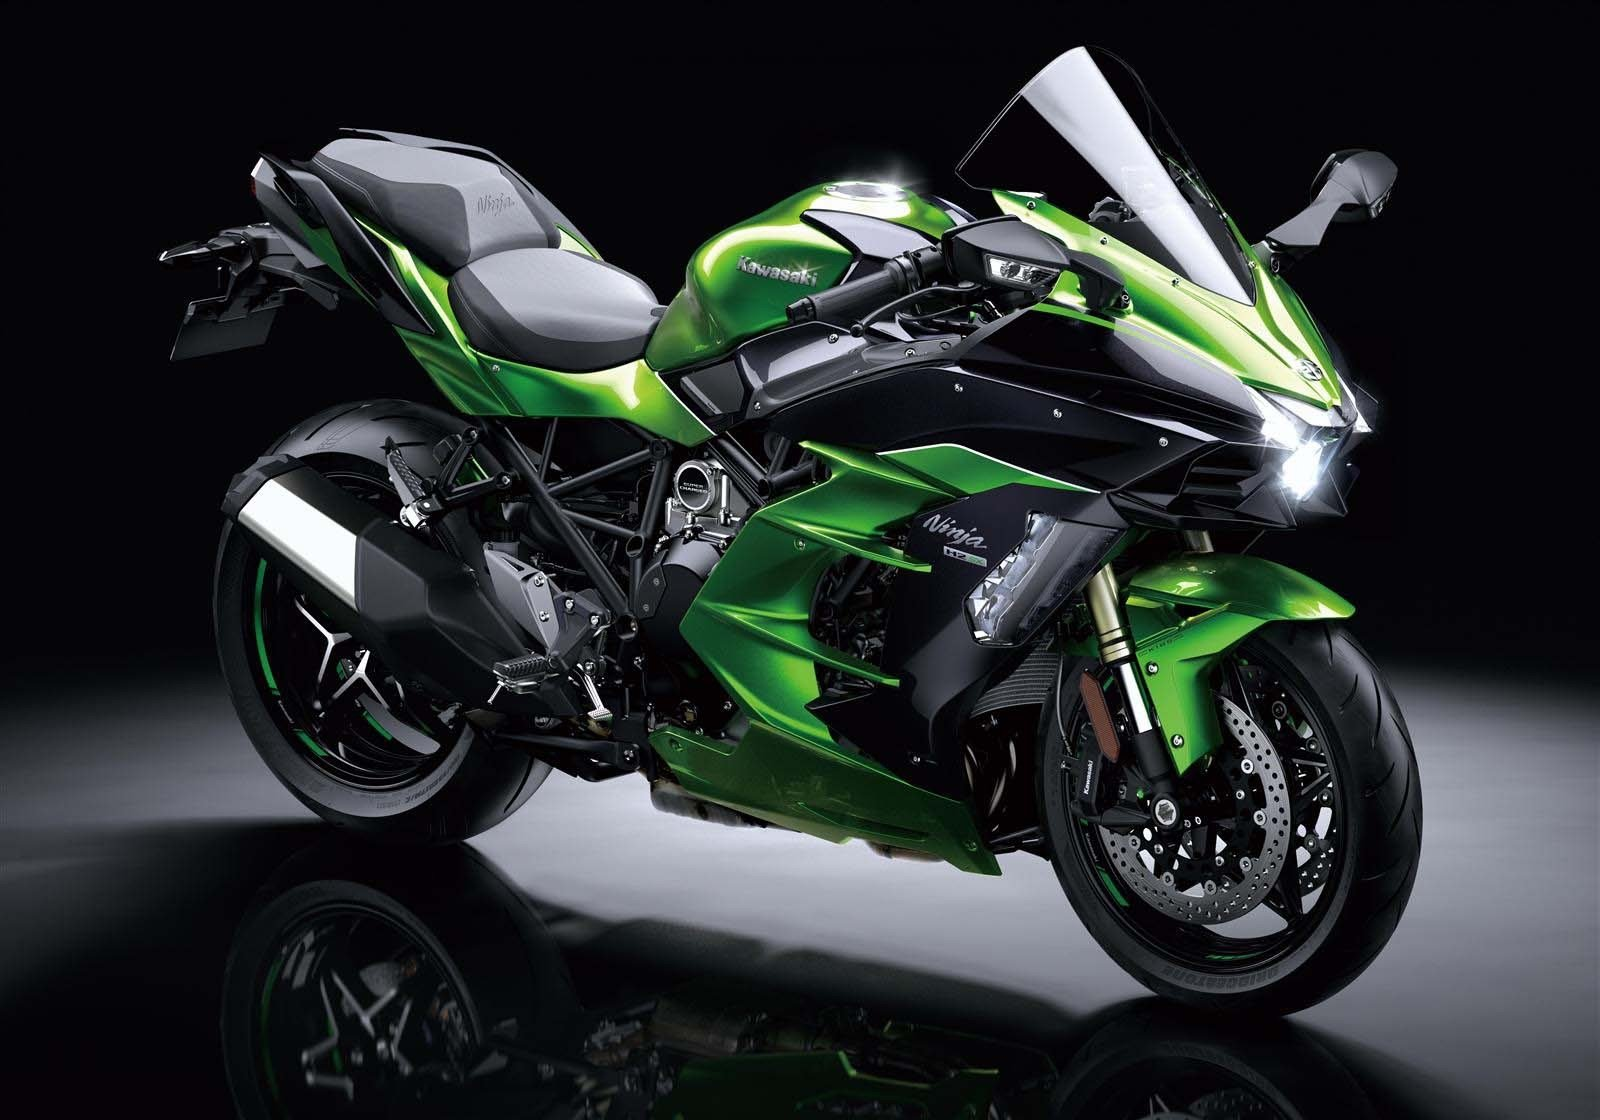 The Ninja H2r Wallpapers Posted By John Simpson